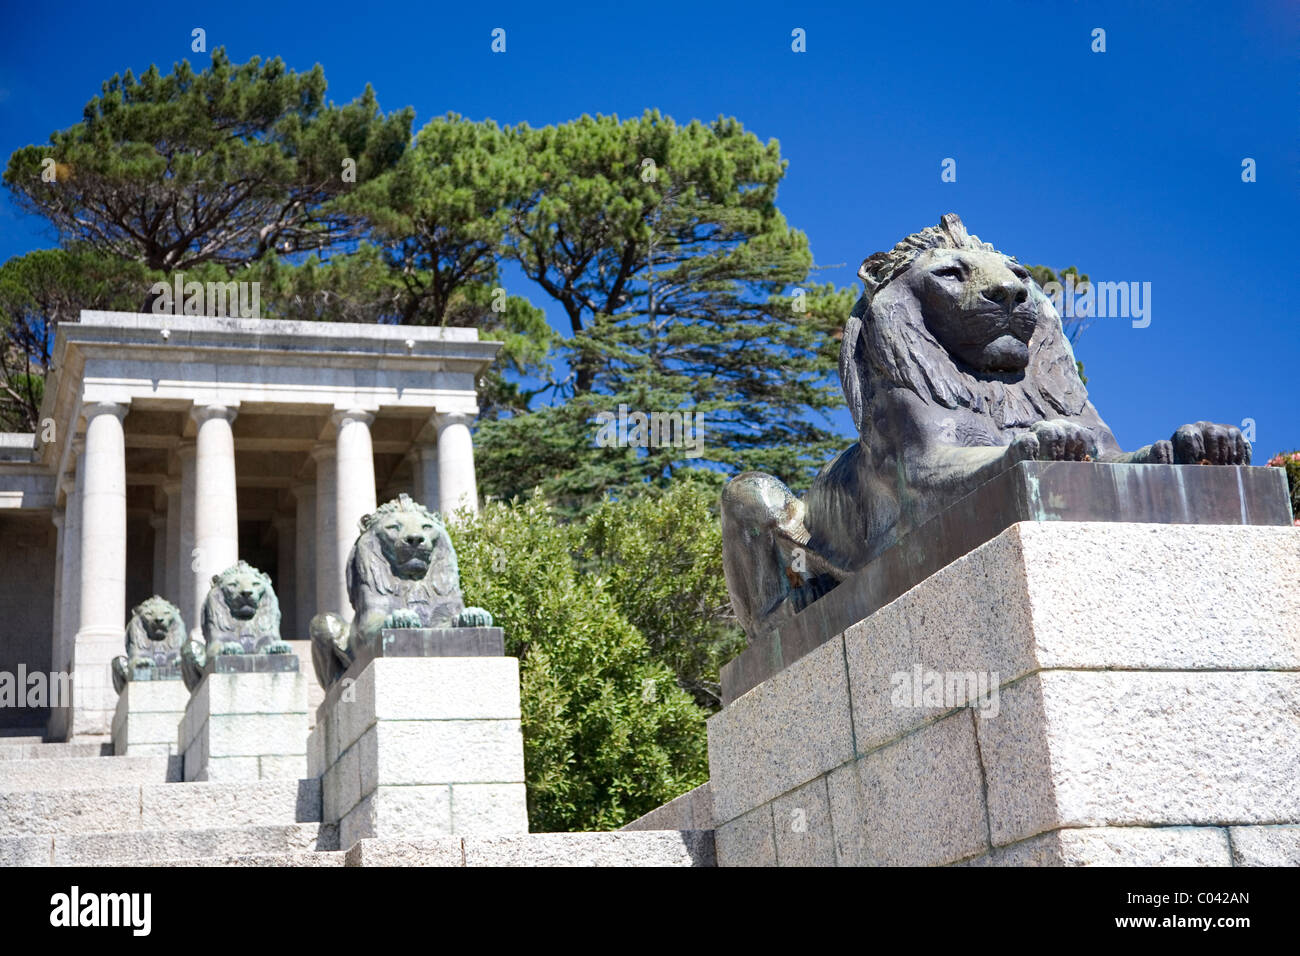 Rhodes Memorial - Cape Town - South Africa - Stock Image